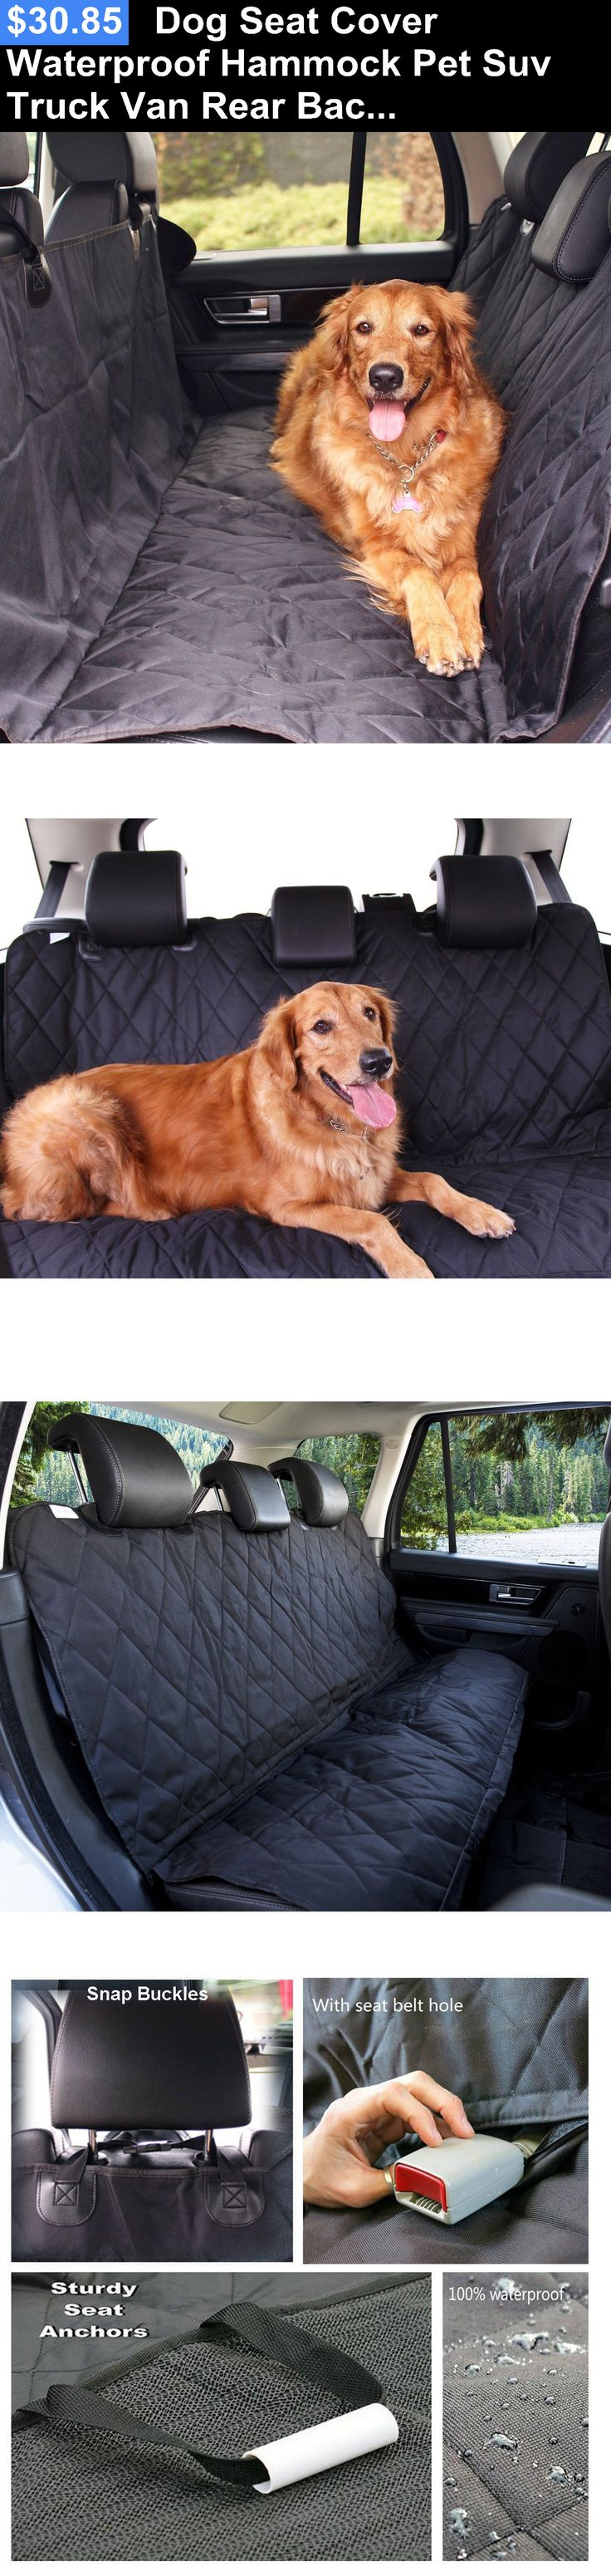 Car Seat Covers 117426: Dog Seat Cover Waterproof Hammock Pet Suv Truck Van Rear Back Protector Mat BUY IT NOW ONLY: $30.85